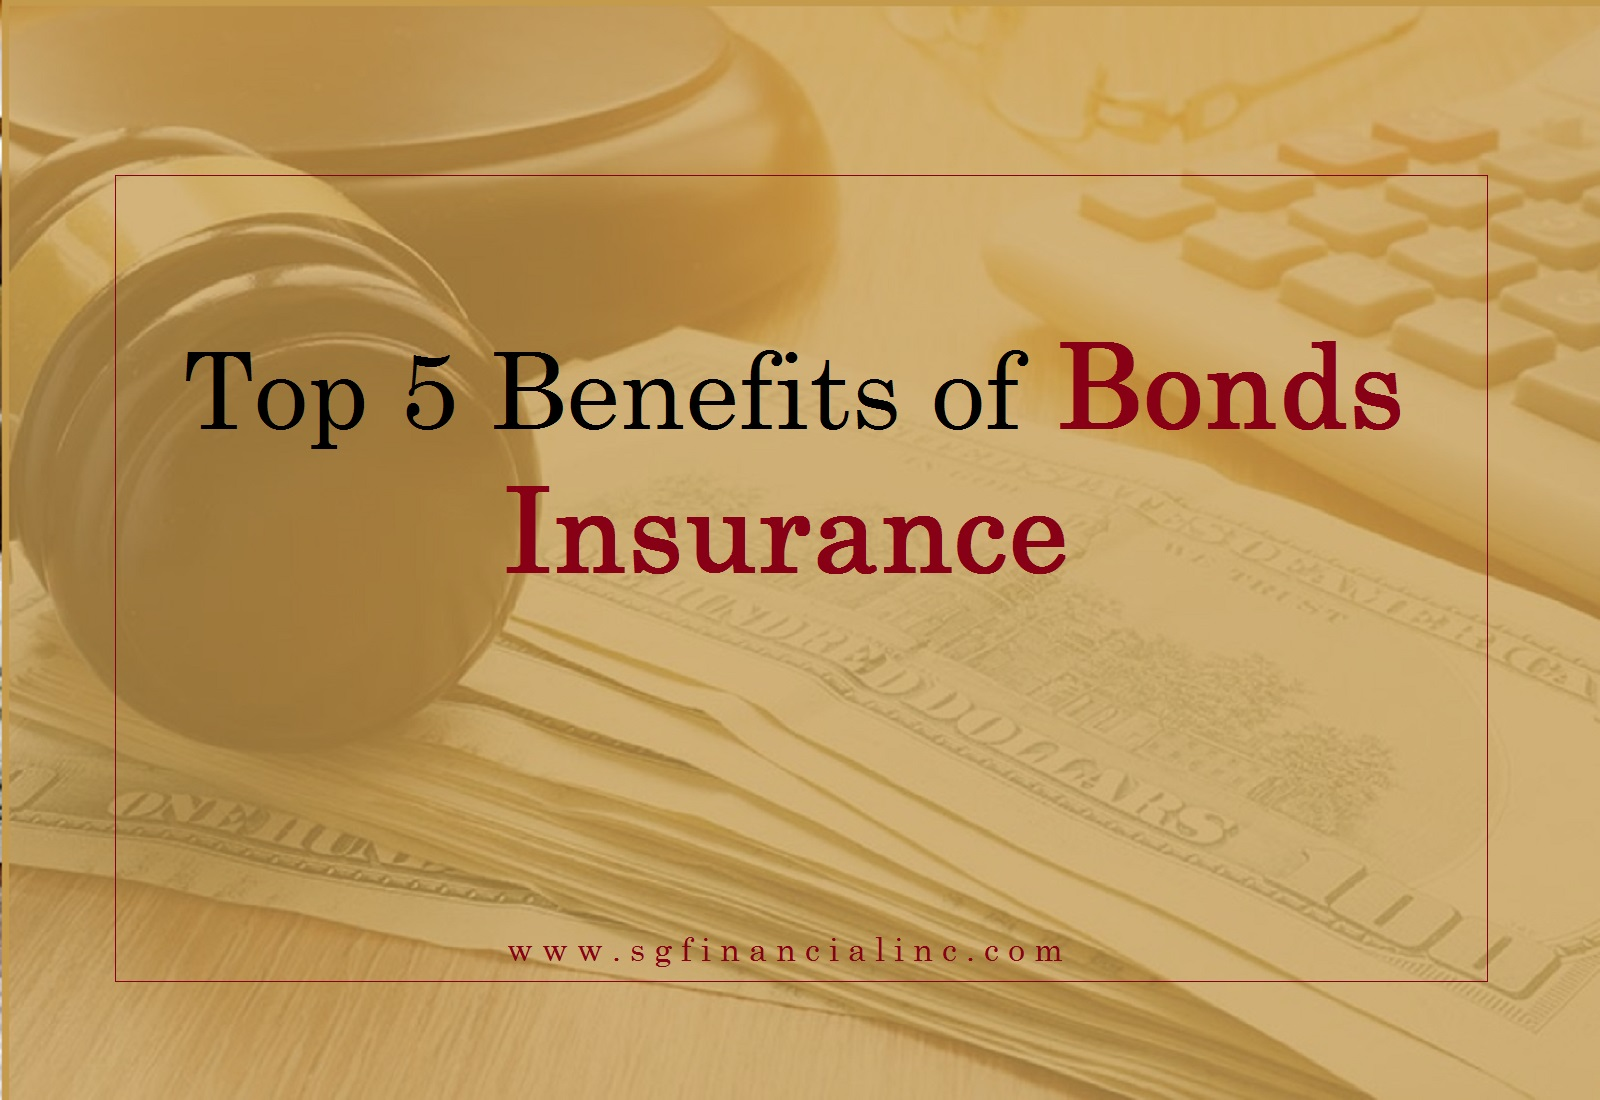 Top 5 Benefits of Bonds Insurance